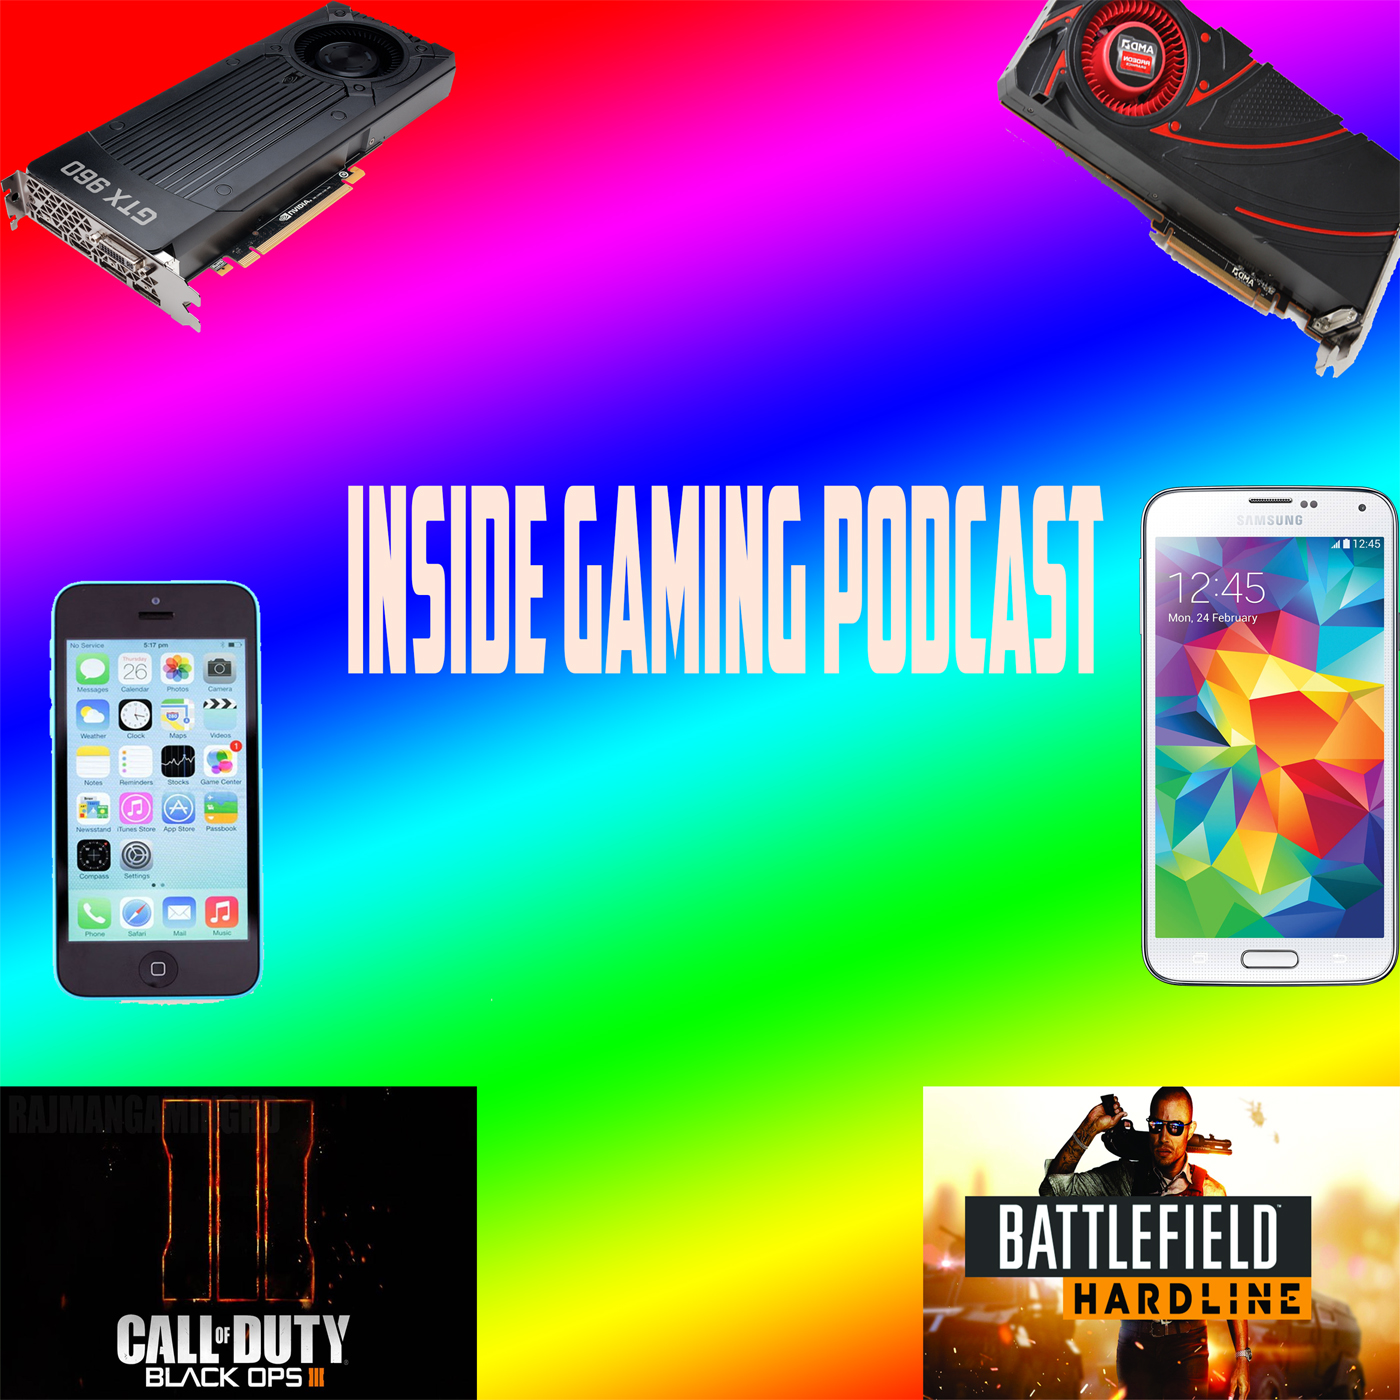 Inside Gaming Podcast!